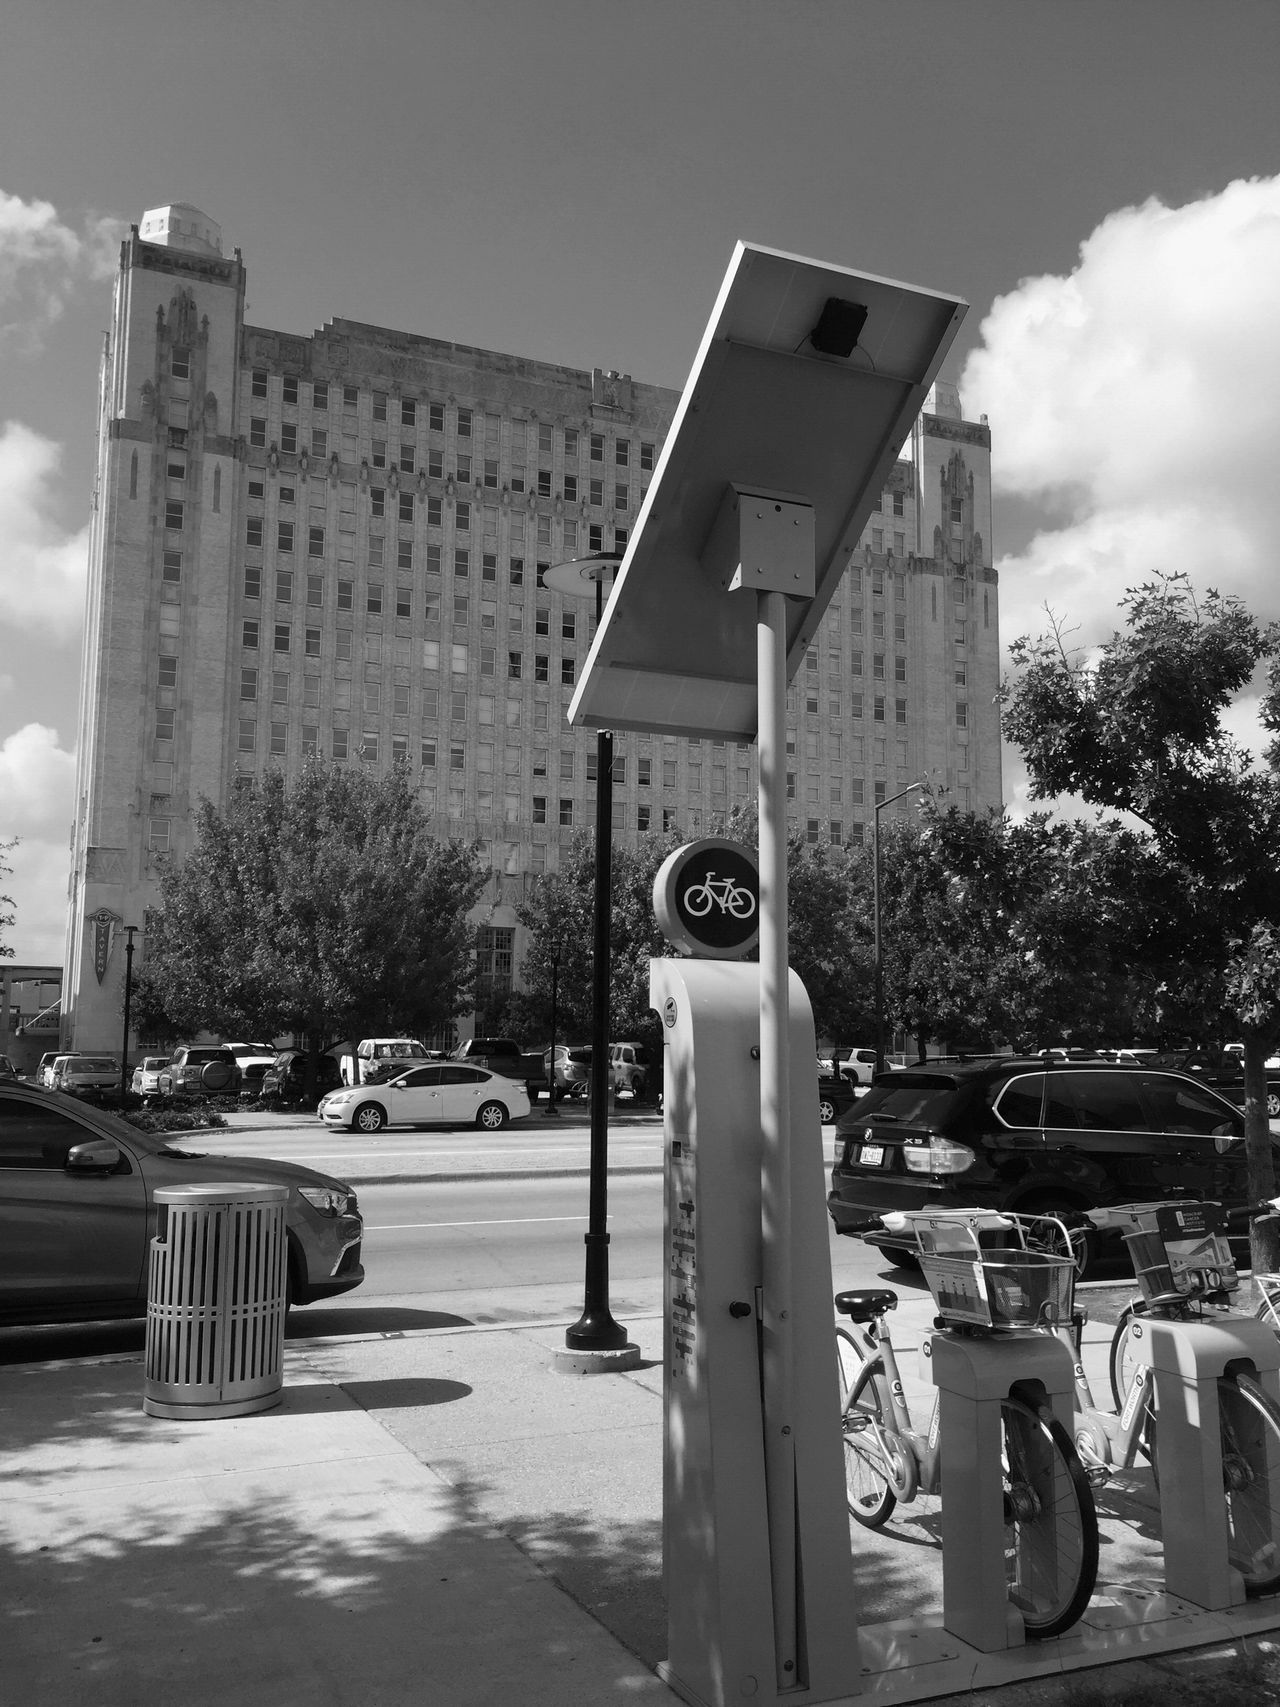 Built Structure Architecture Day Sky Outdoors Building Exterior No People Tree Road Sign City Bike Rack Biking Bike Life Monochrome Photography Ft Worth Bike Rental Urban Landscape